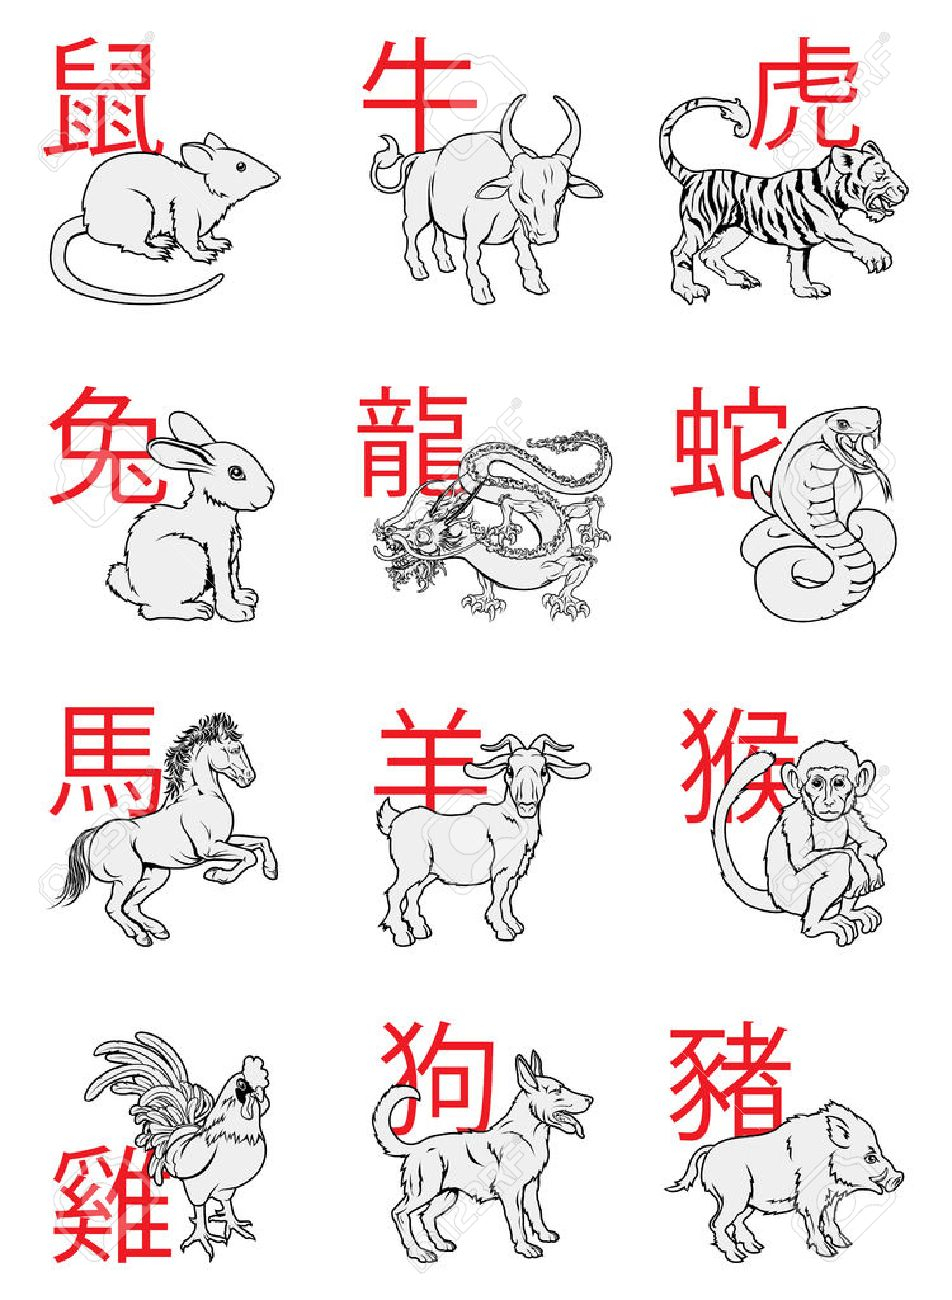 A Series Of Chinese New Year Zodiac Signs With The Calligraphy..